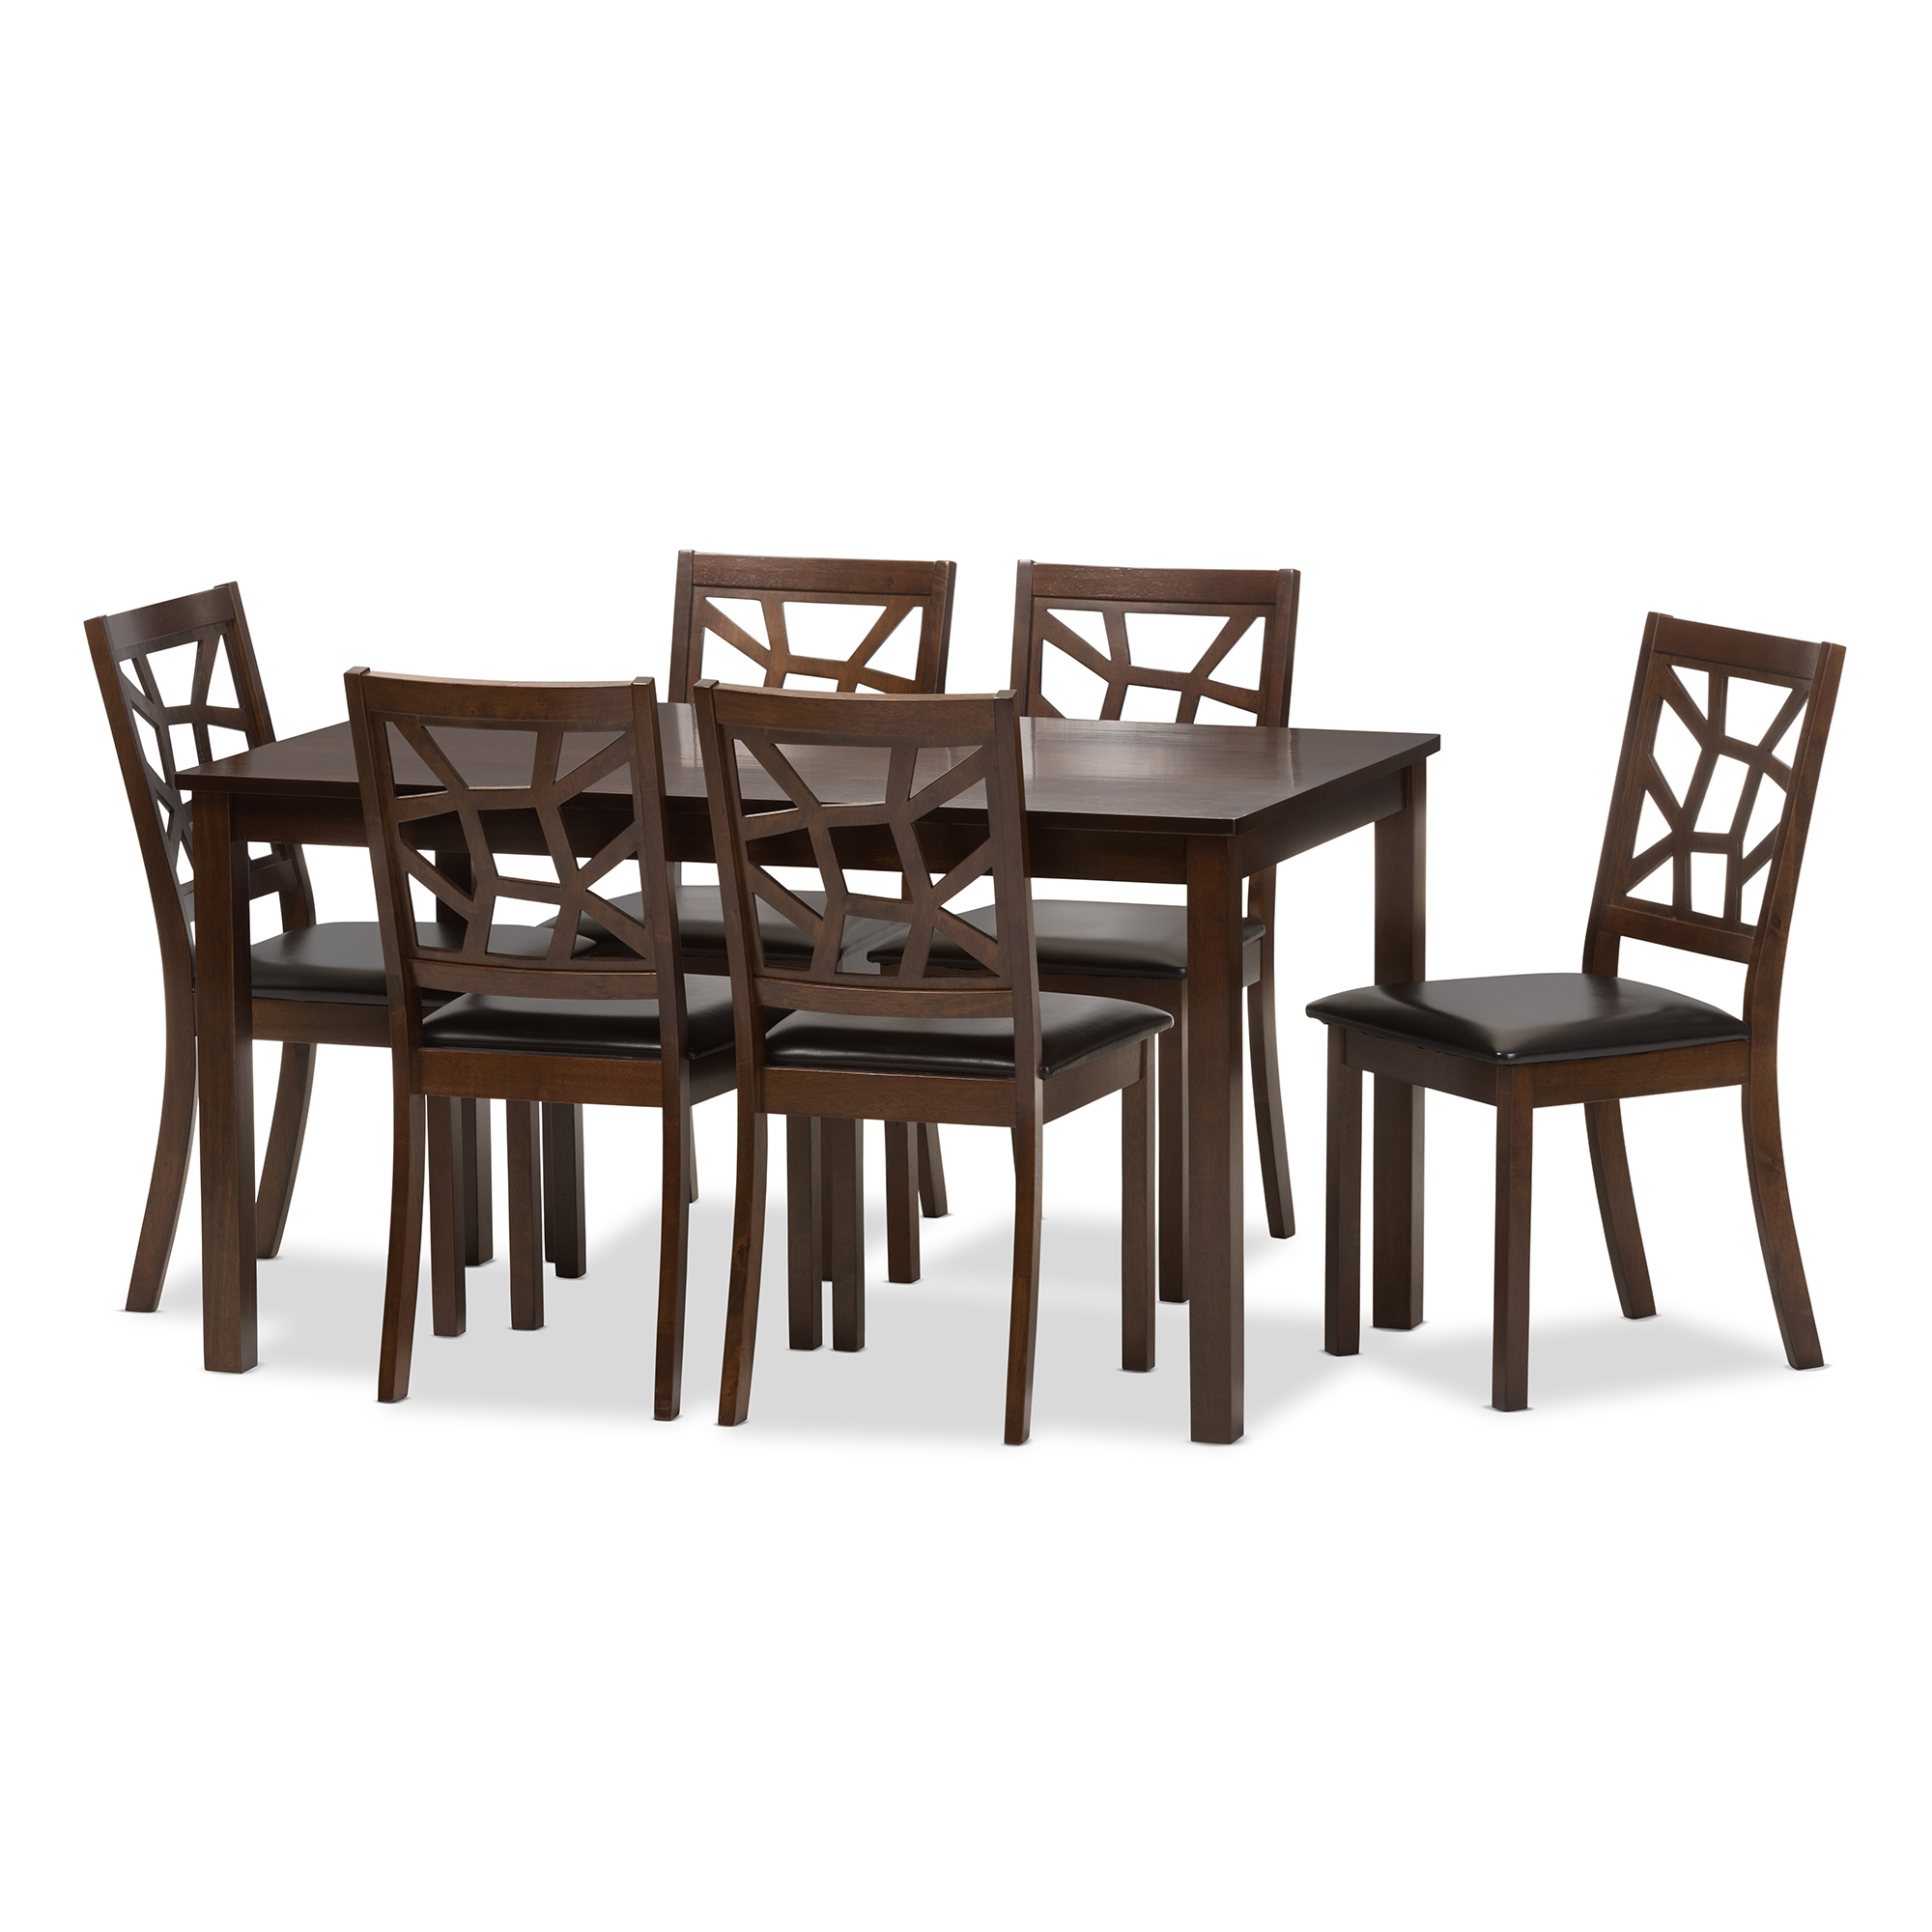 Baxton Studio Mozaika Wood And Leather Contemporary 7 Piece Dining Set